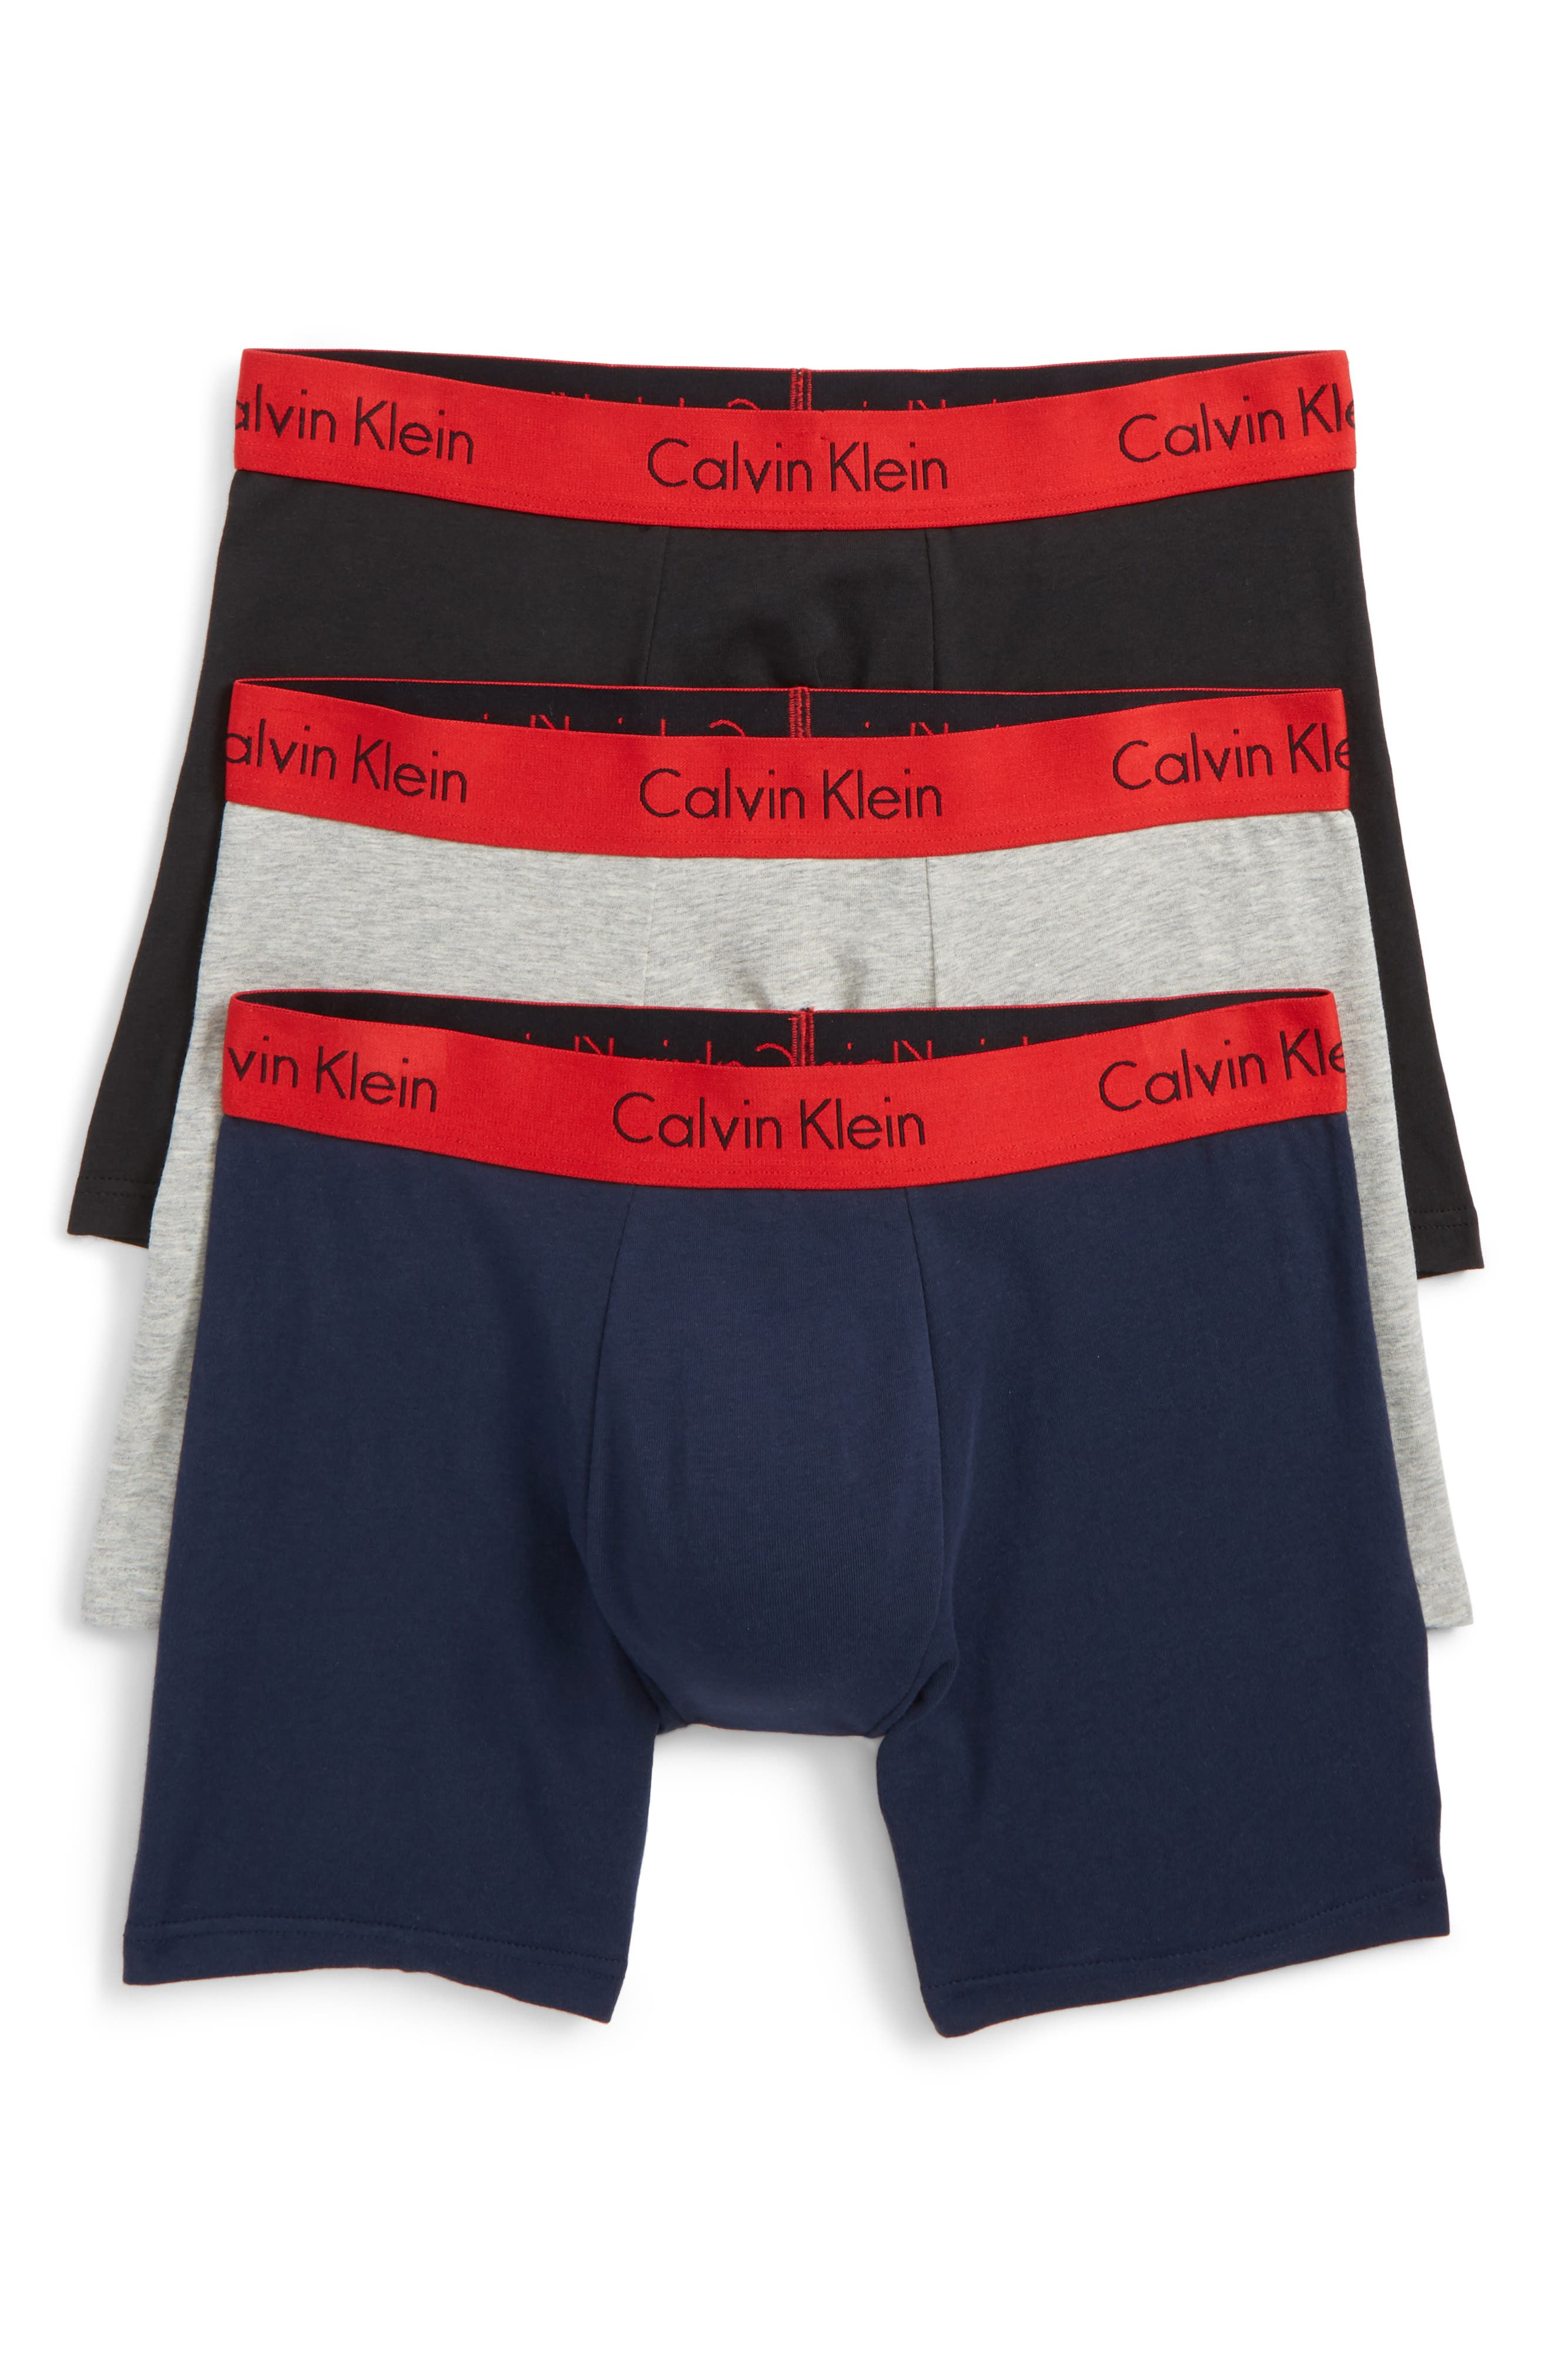 3-Pack Boxer Briefs,                         Main,                         color, Black/ Grey/ Blue/ Red Band